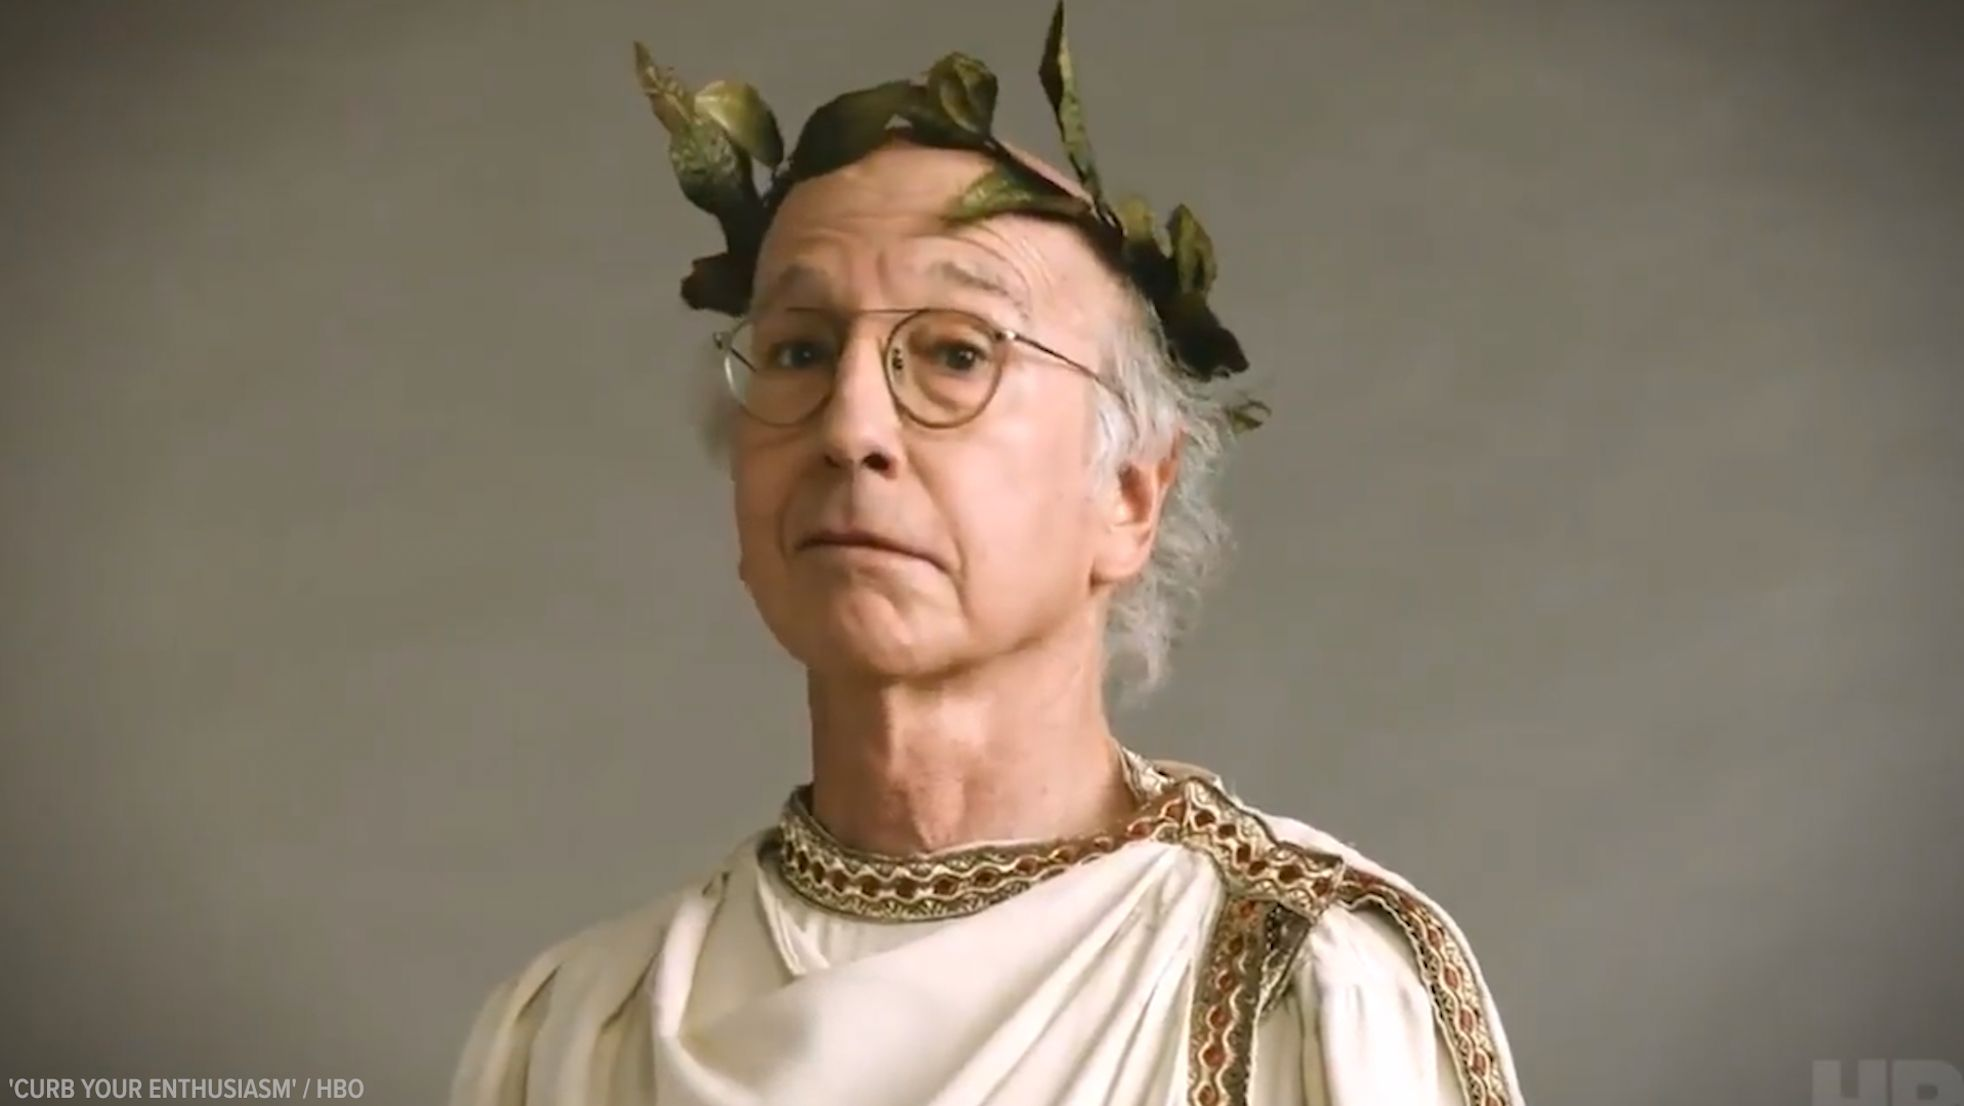 Curb Your Enthusiasm is coming back after a six-year hiatus